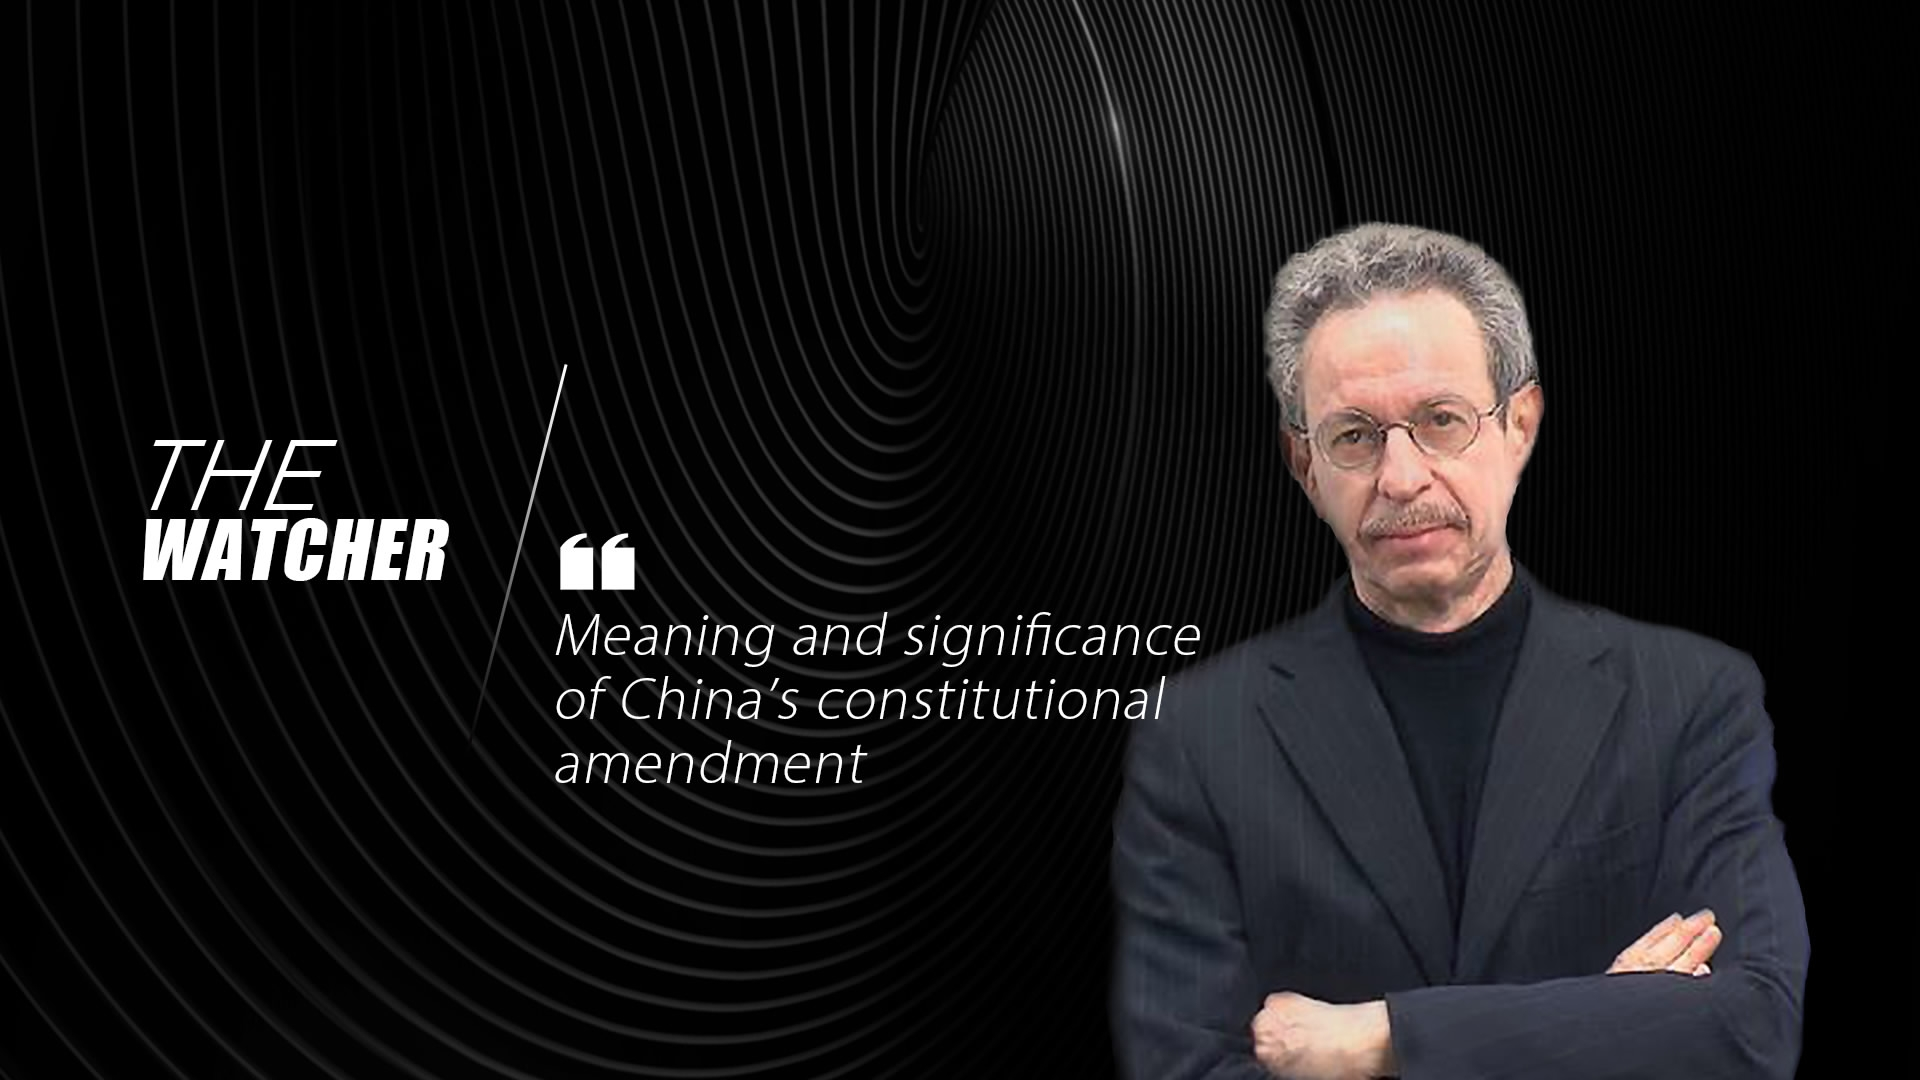 The Watcher: Meaning and significance of China's constitutional amendment